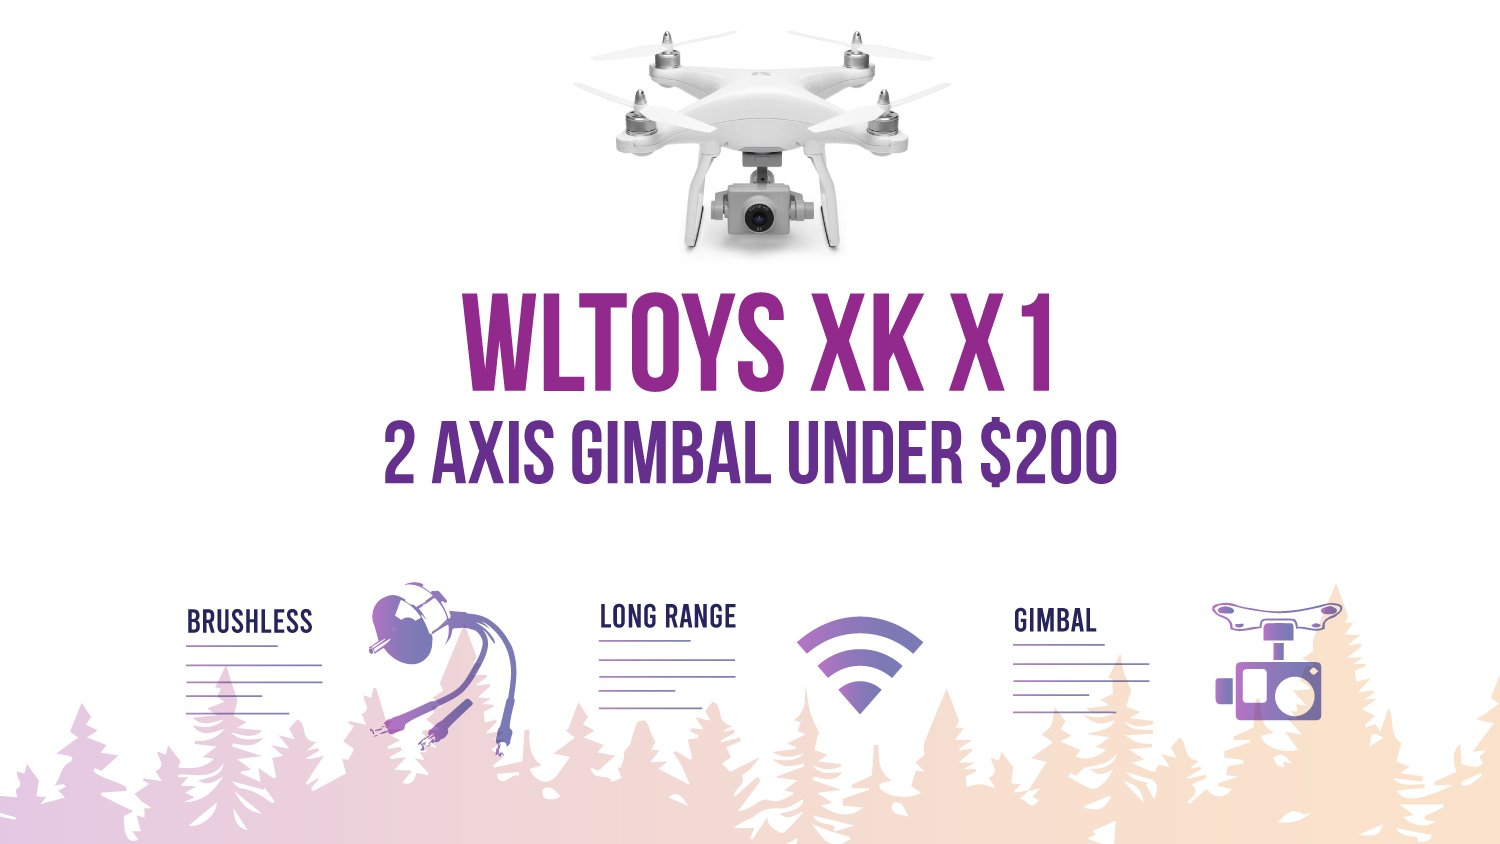 wltoys xk x1 drone review 2 axis gimbal